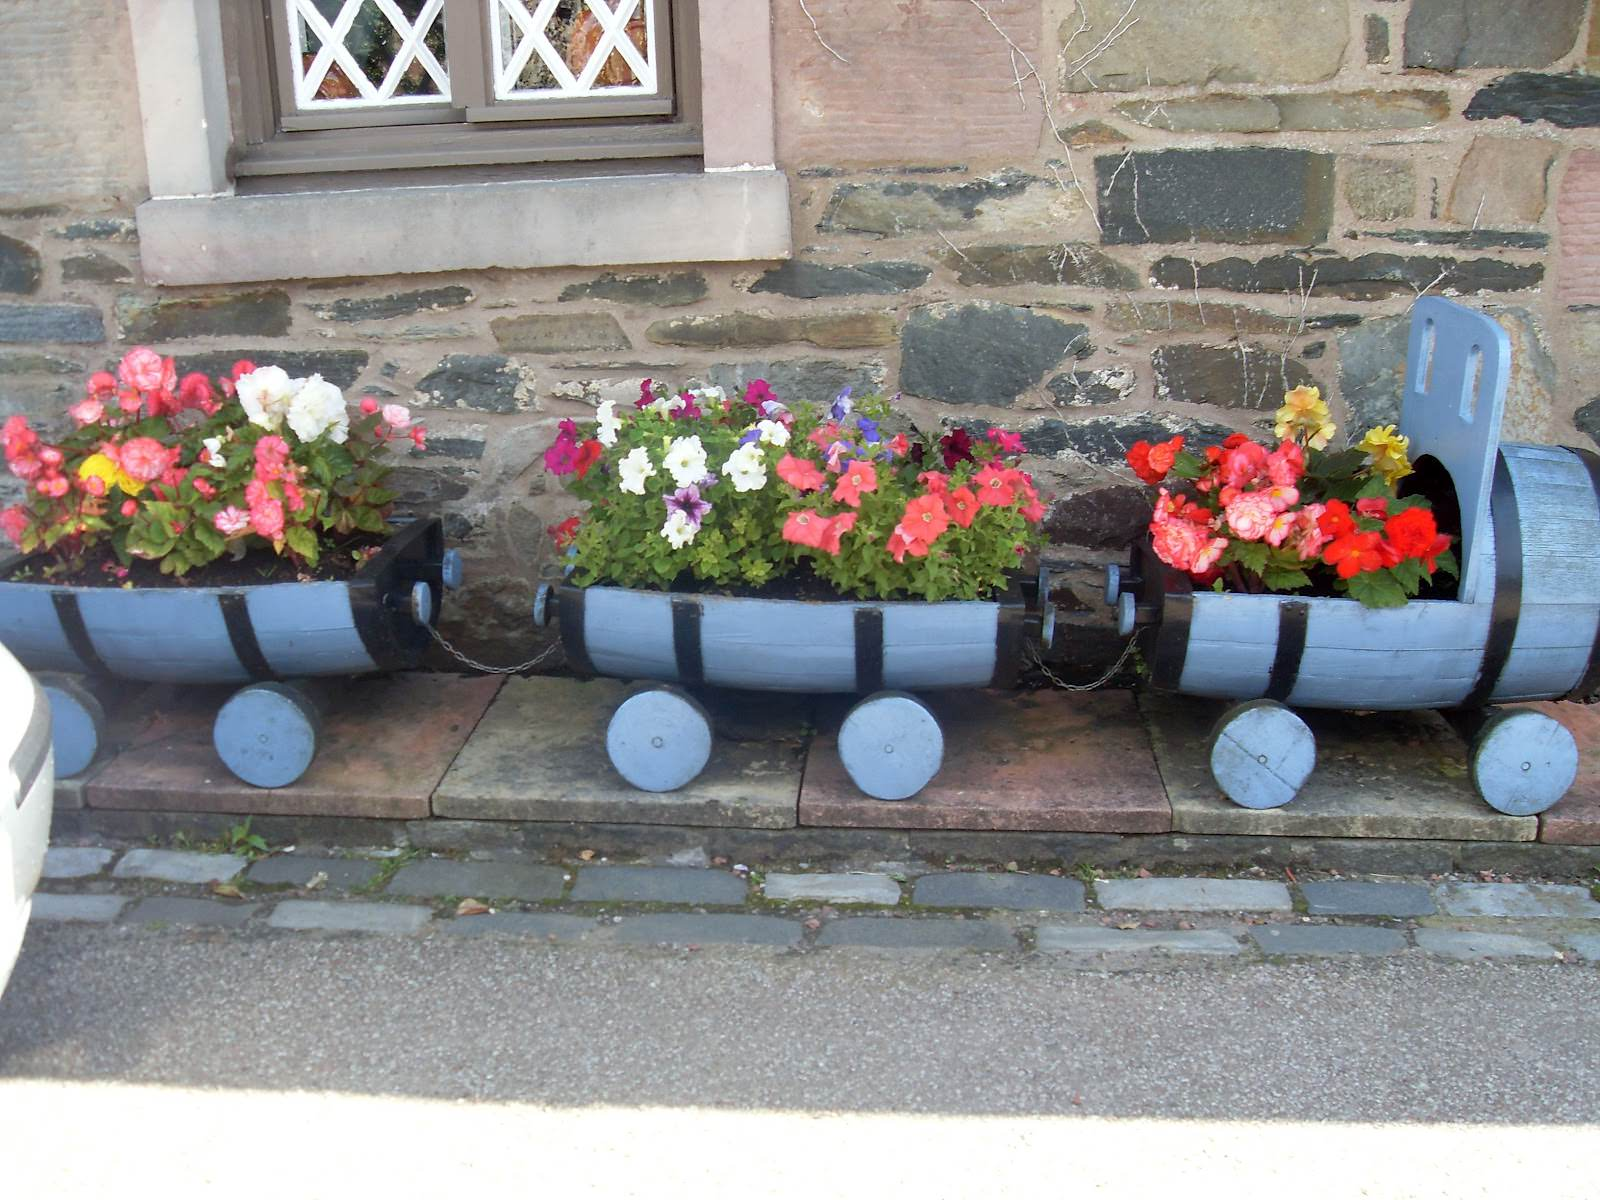 RECYCLED BARRELS INTO A TRAIN PLANTER